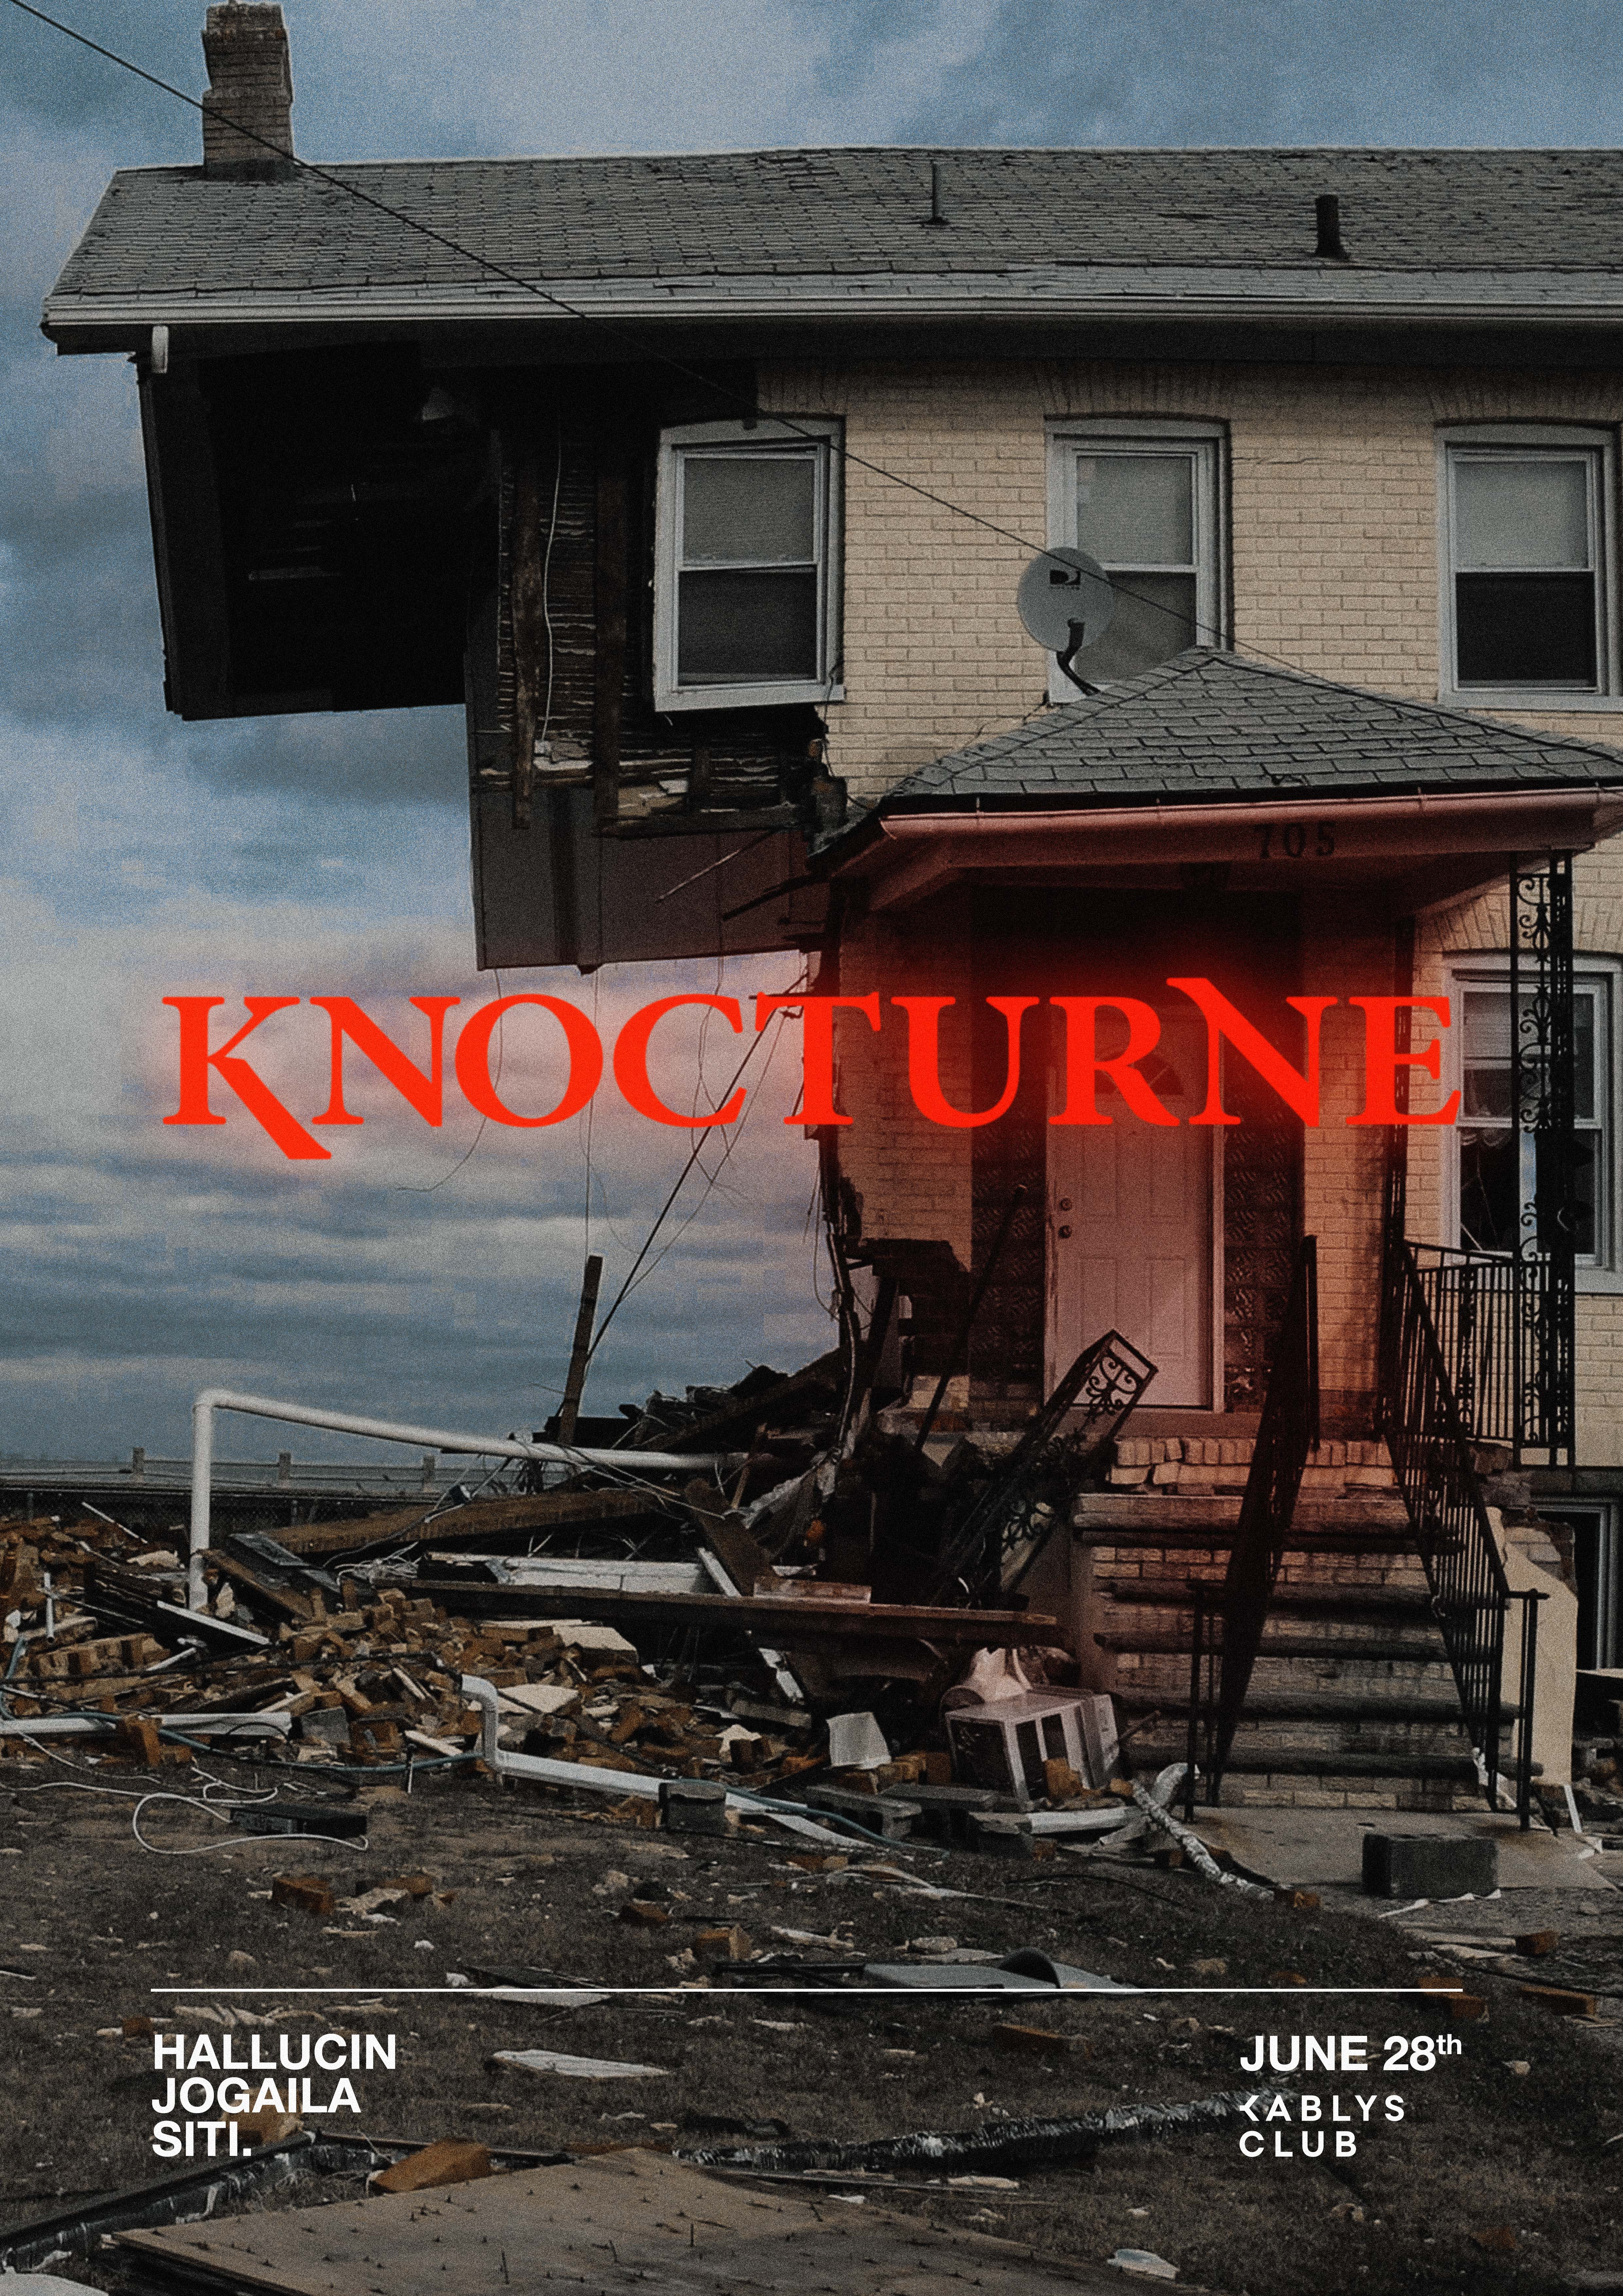 Knocturne Summer